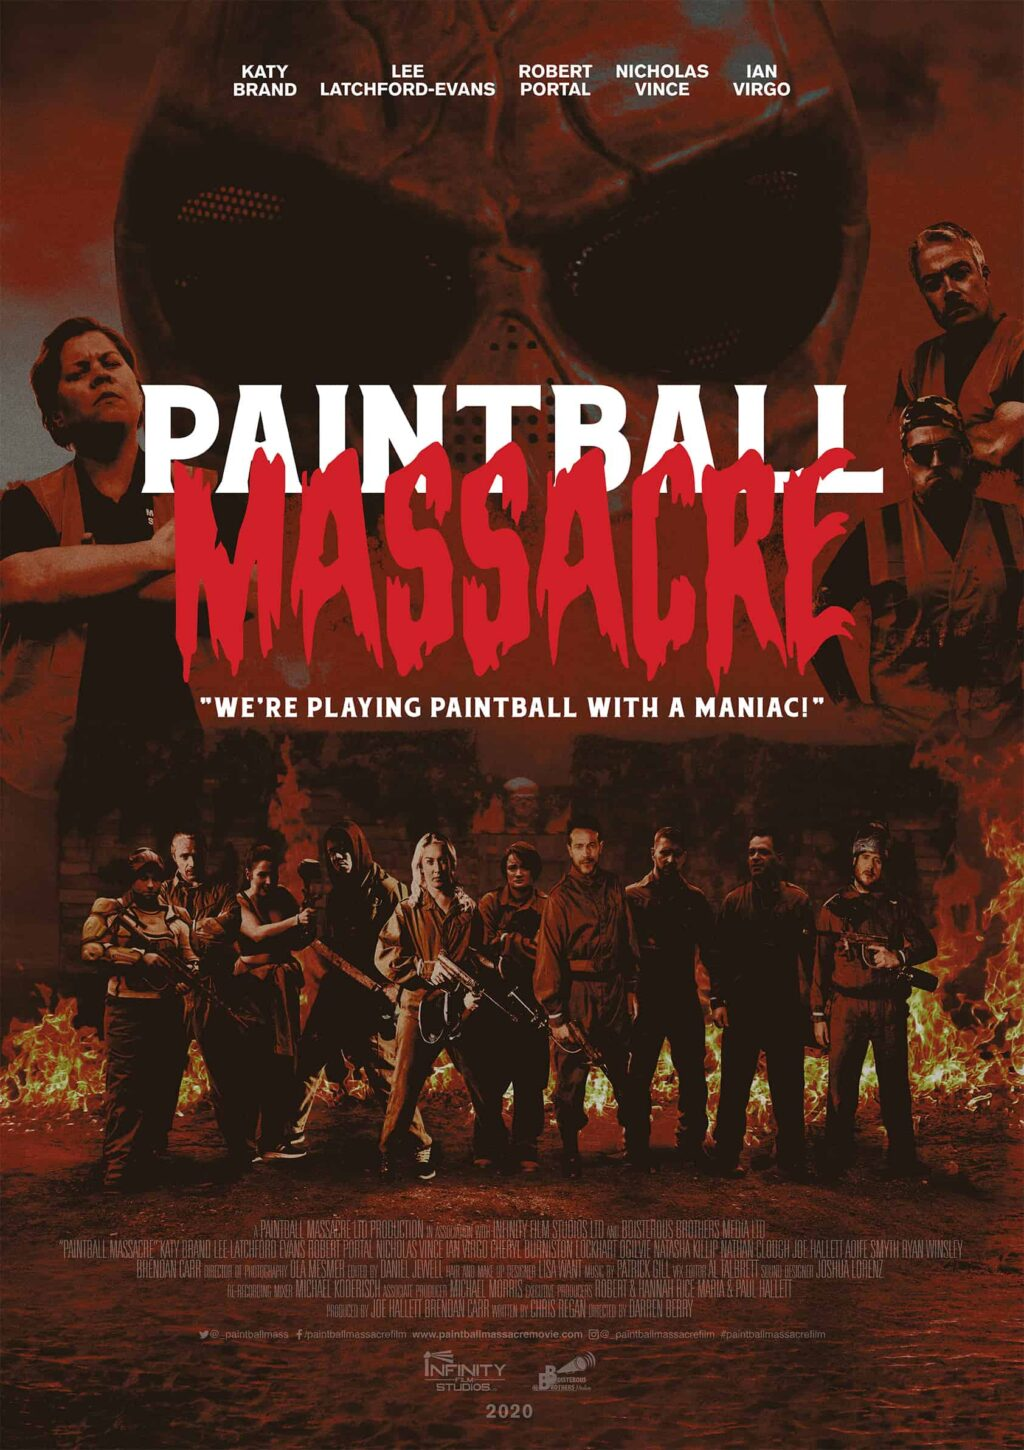 PBM Poster 1 72 RGB 1024x1450 - 1st Look at Artwork for British Horror Comedy PAINTBALL MASSACRE